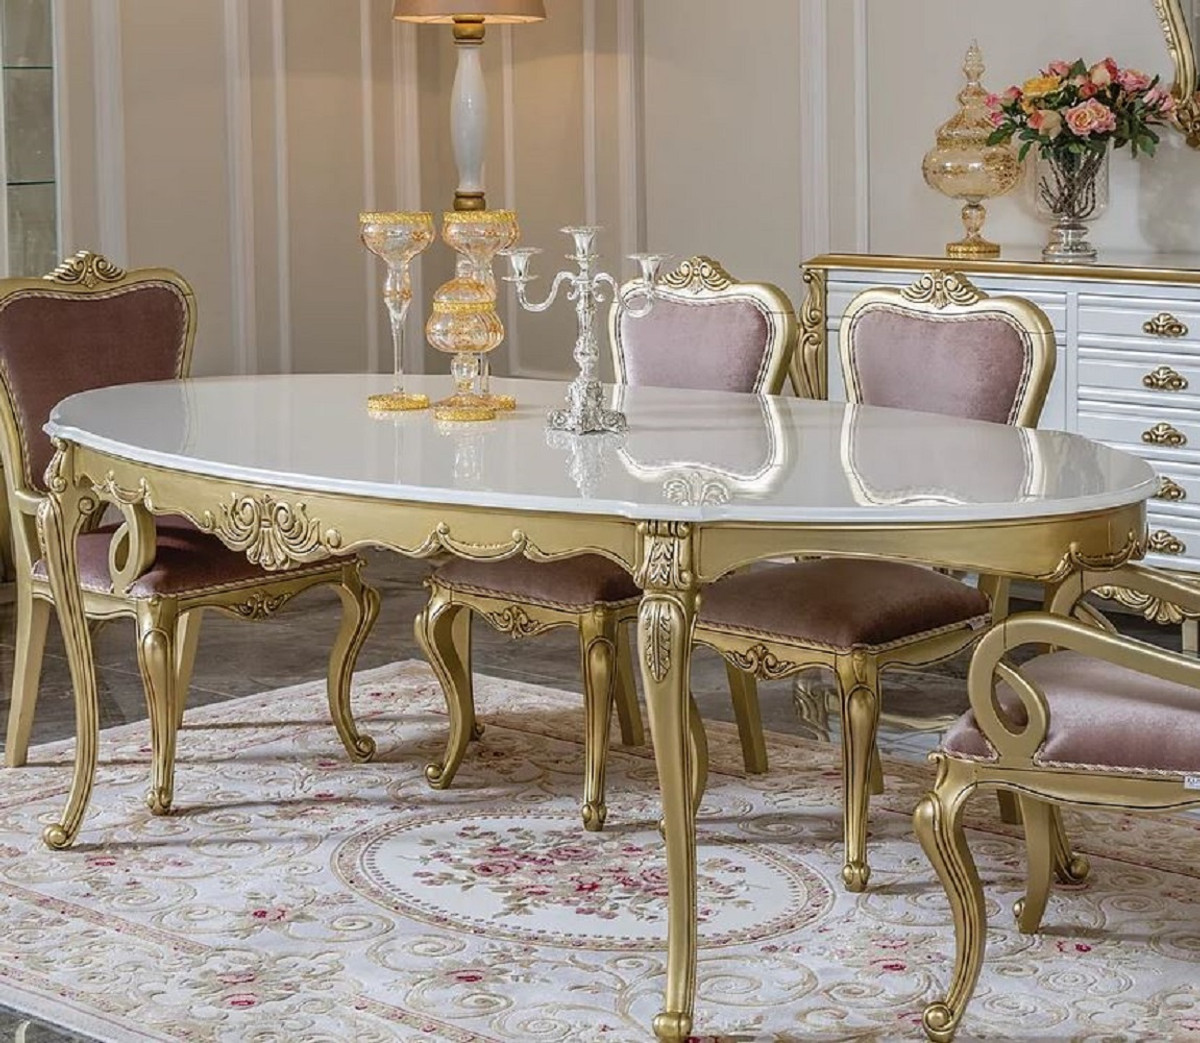 Oval Solid Wood Dining Room Table, Gold Dining Room Sets